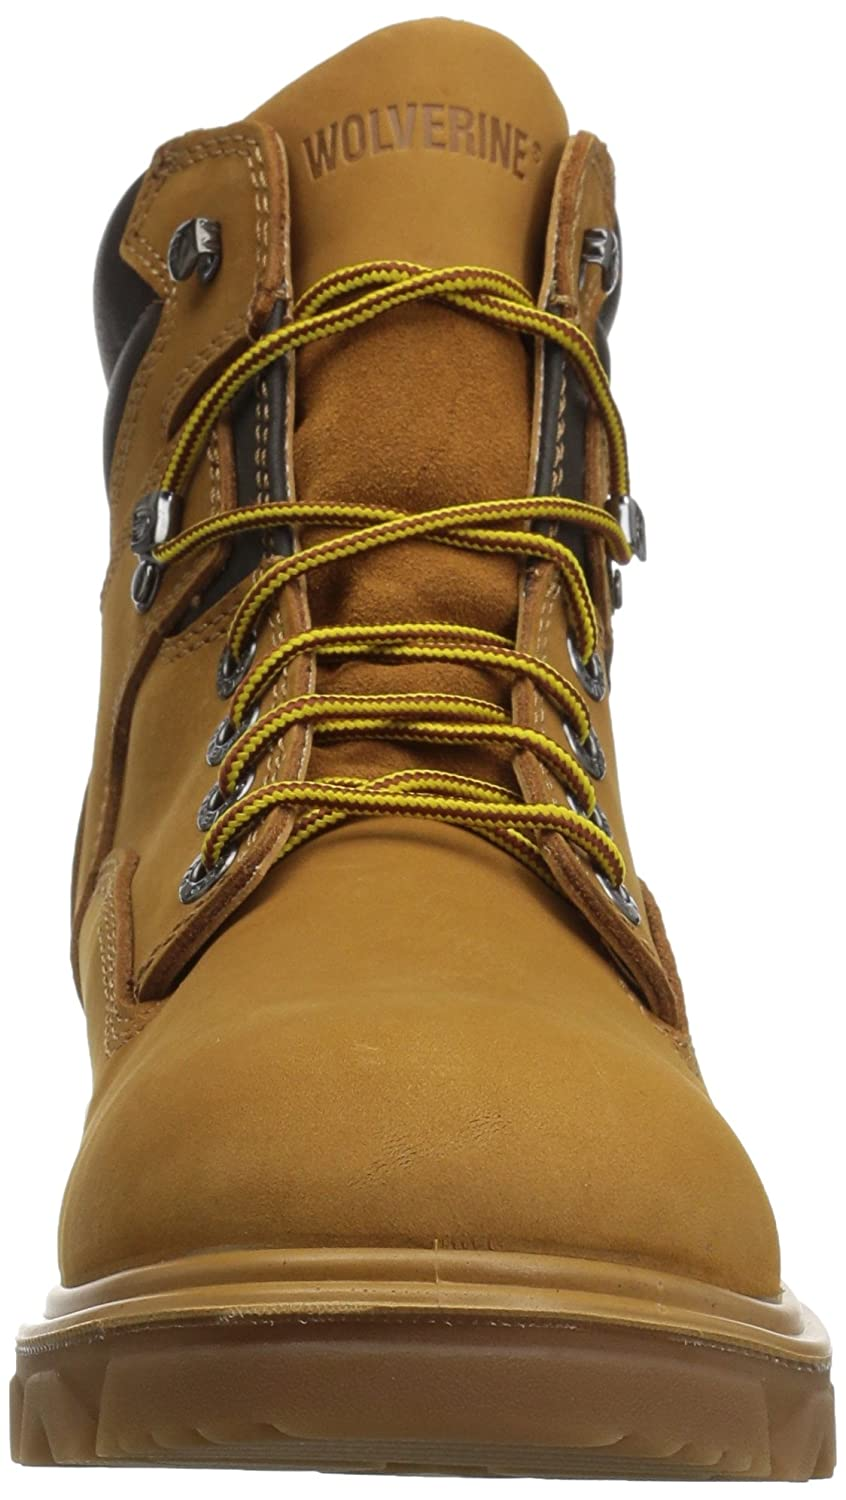 c20a0bf8966 Wolverine Men's I-90 Waterproof Soft-Toe 6 6 6 Construction Boot ...